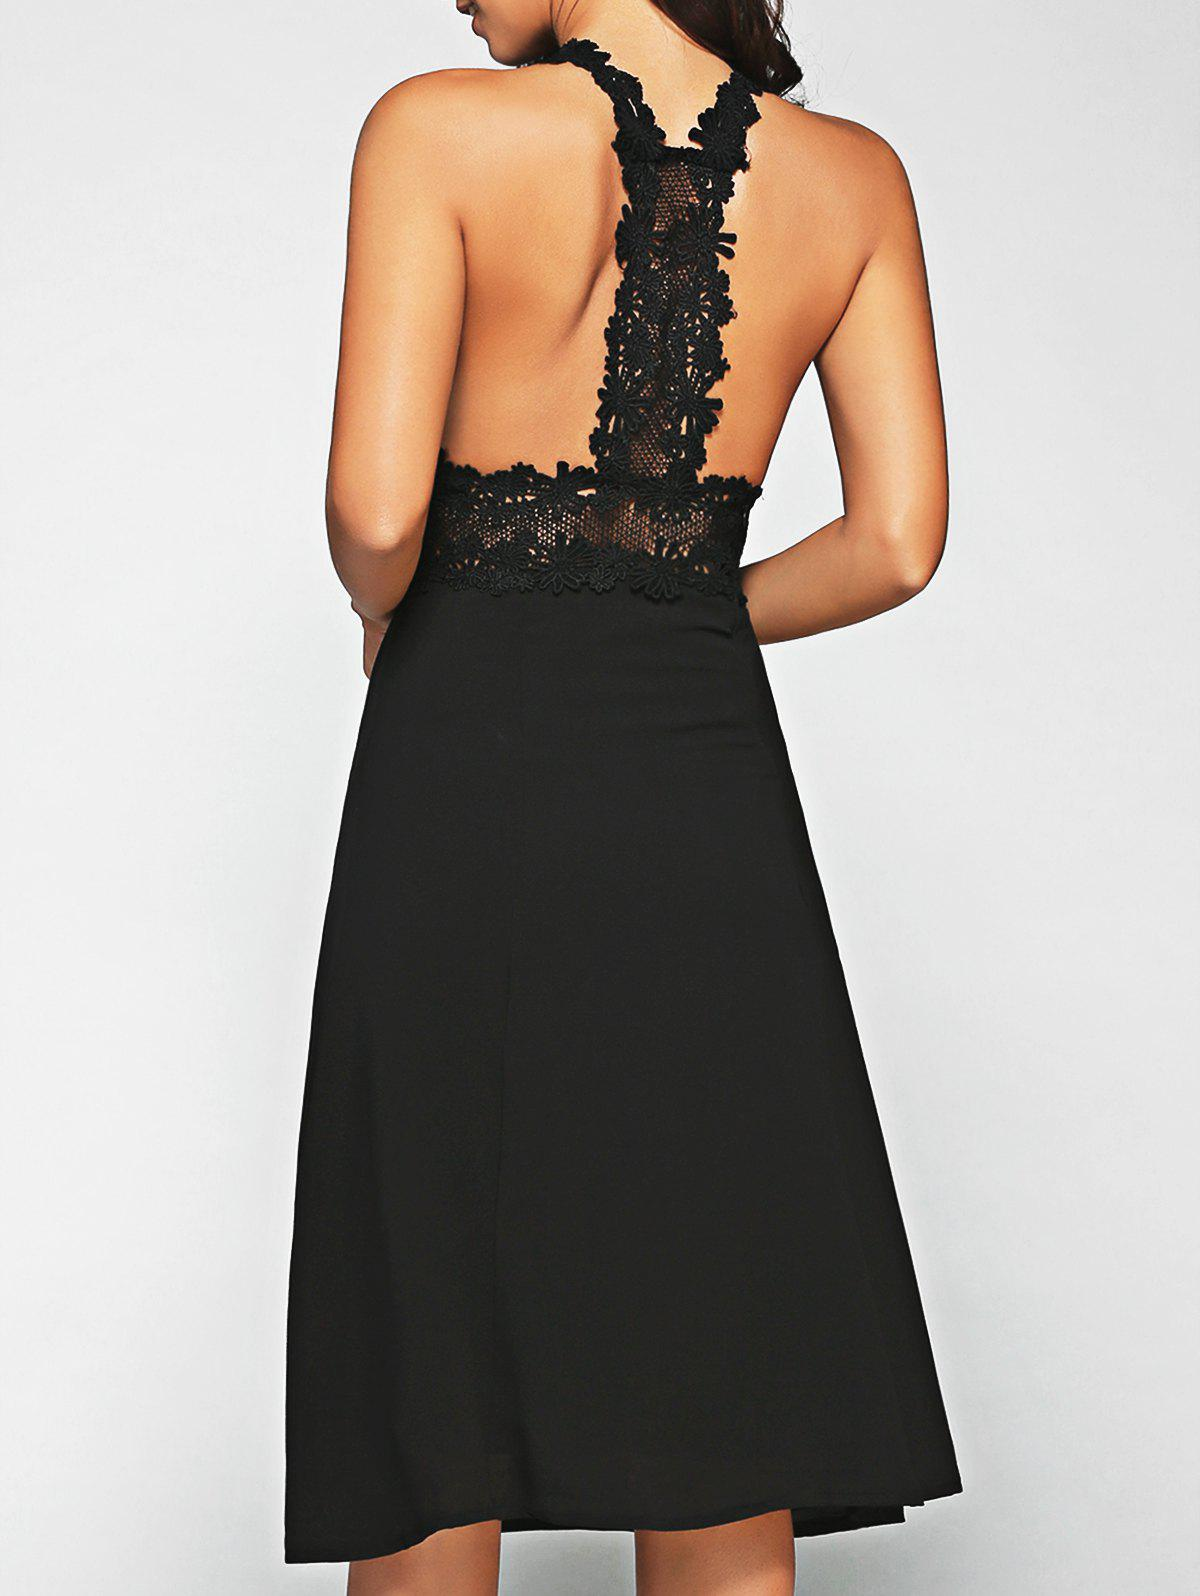 Lace Racerback Midi Dress - BLACK XL